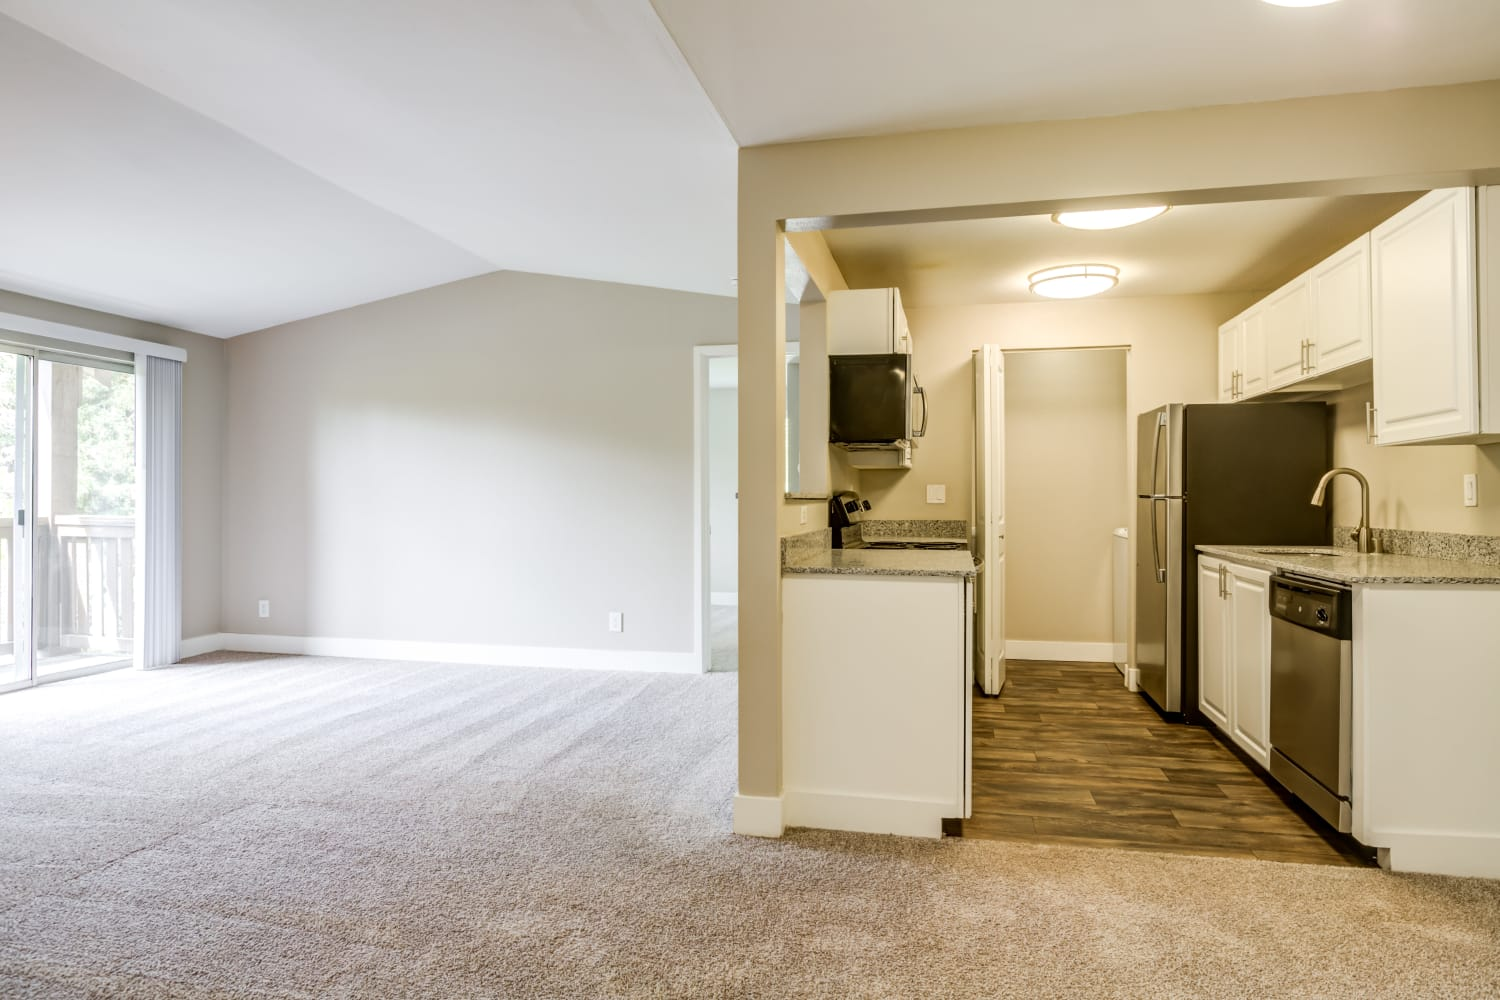 Living Room and Kitchen at Campbell Run Apartments in Woodinville, Washington